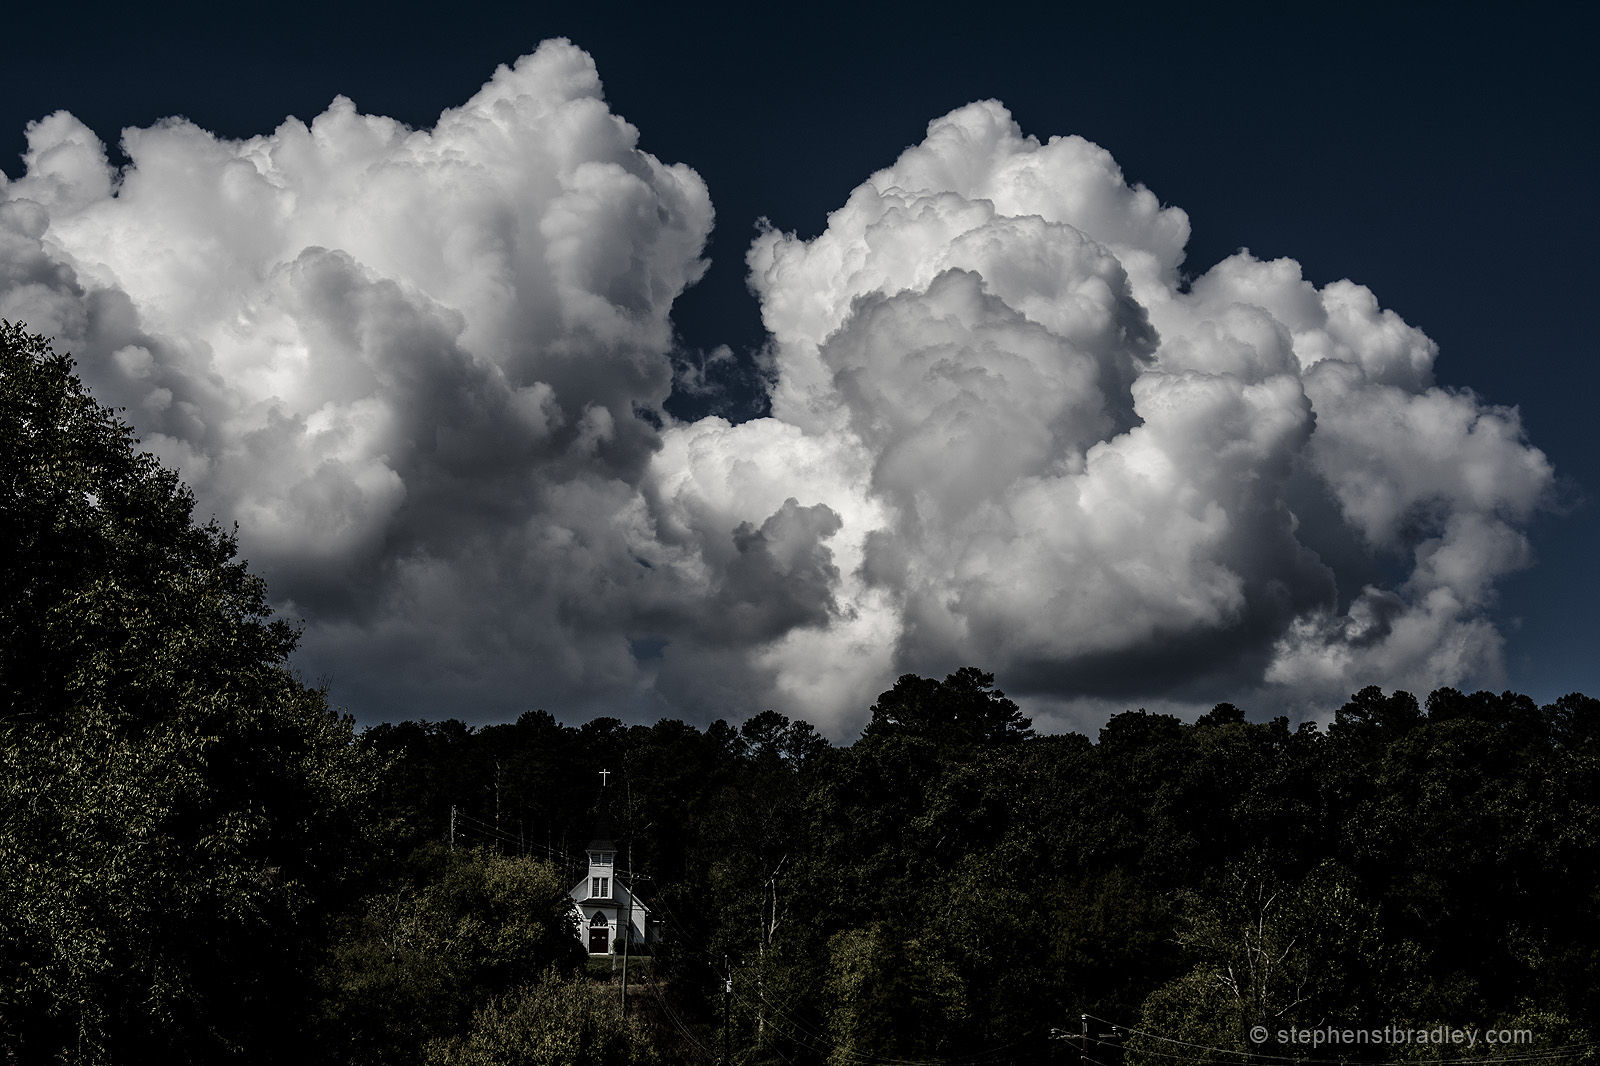 Clouds over Tate, Pickens County, Georgia, USA - image 1441.